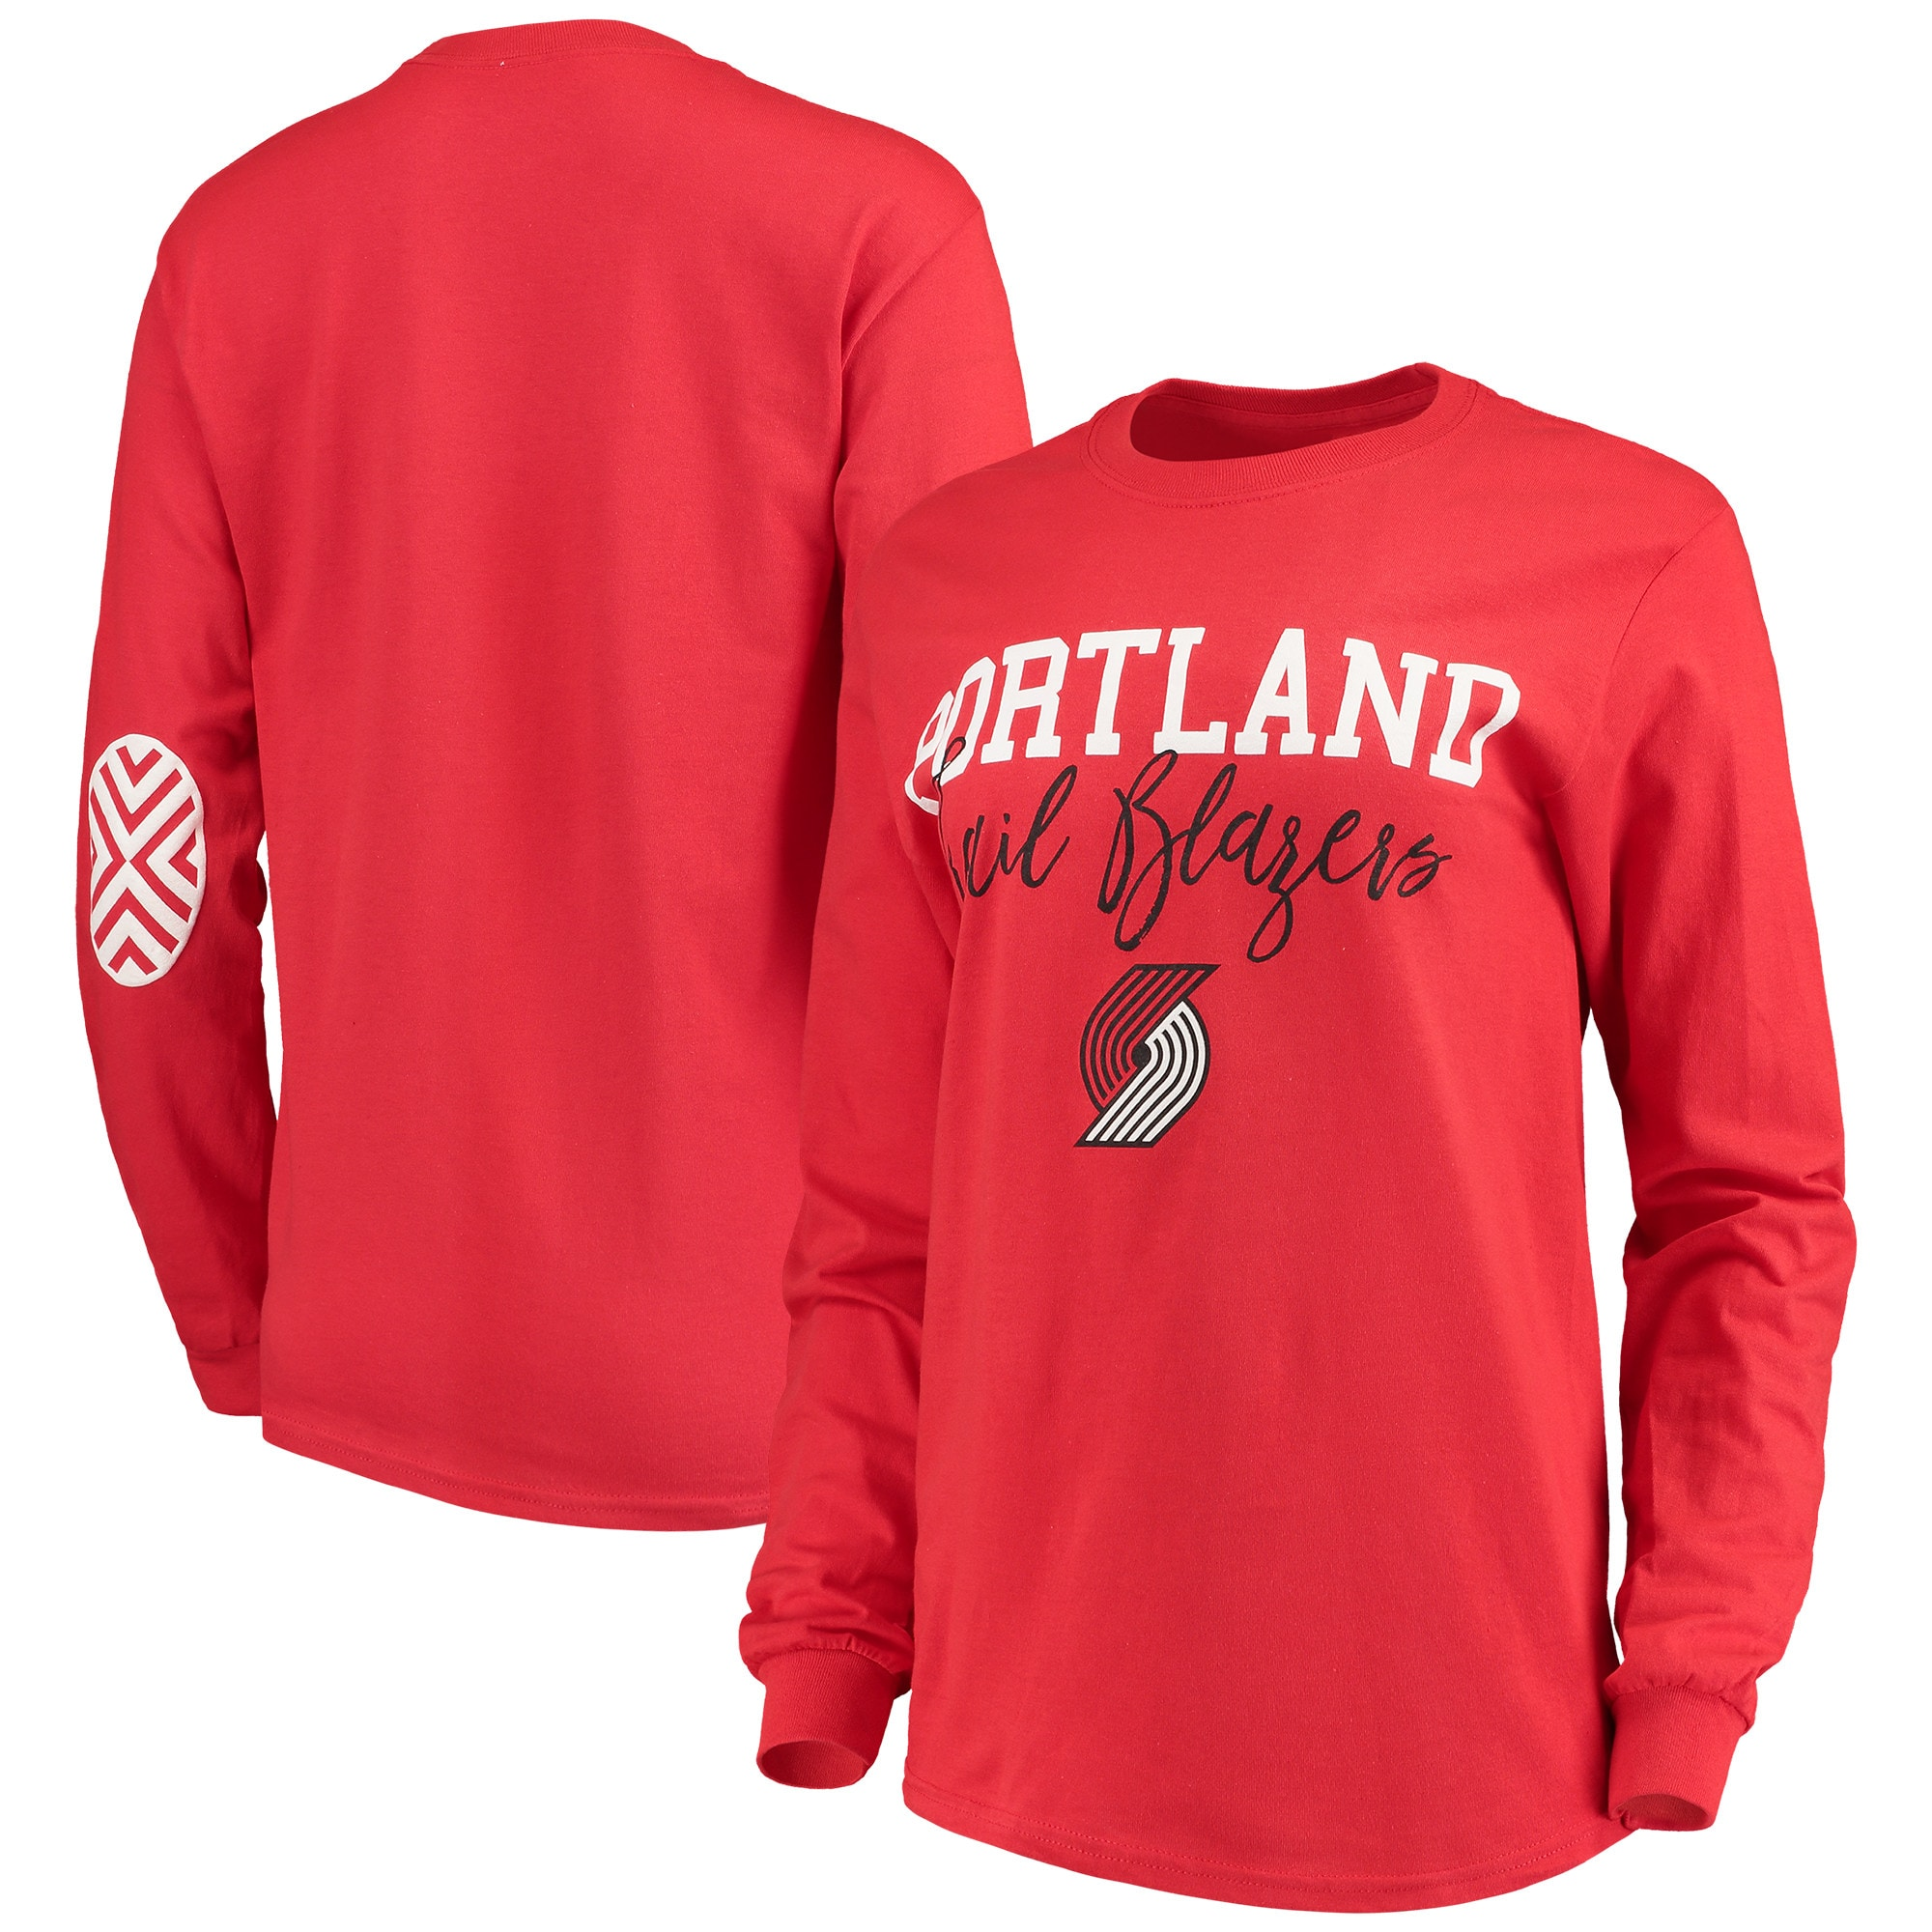 Portland Trail Blazers Women's Elbow Patch Long Sleeve T-Shirt - Red